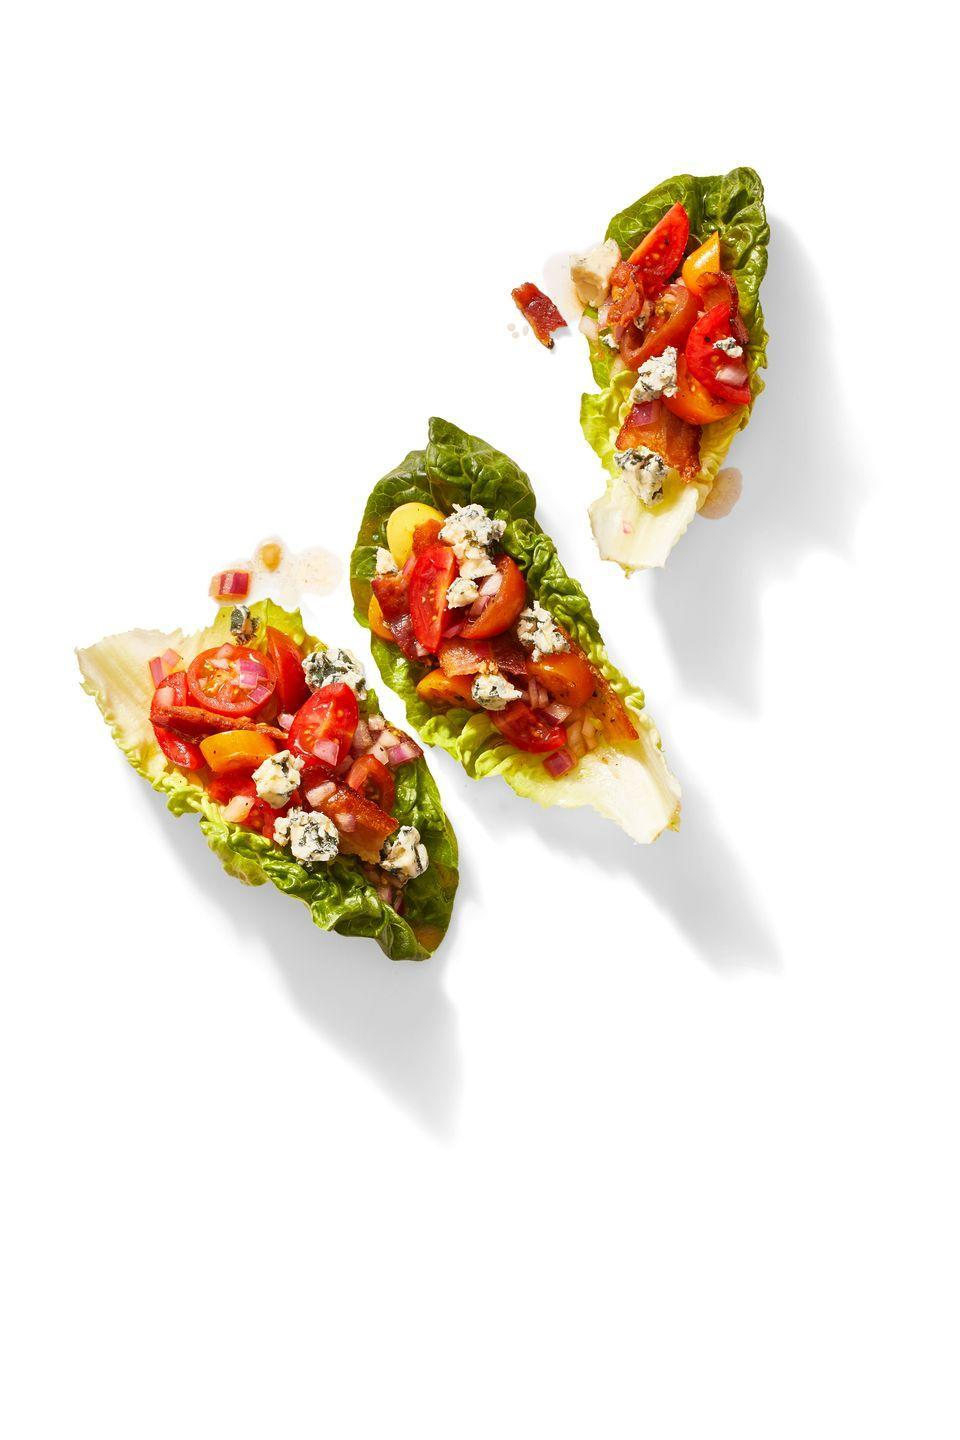 """<p>Make BLTs for a crowd by stuffing them into adorable lettuce cups.</p><p><em><a href=""""https://www.goodhousekeeping.com/food-recipes/a35190909/blt-bites-recipe/"""" rel=""""nofollow noopener"""" target=""""_blank"""" data-ylk=""""slk:Get the recipe for BLT Bites »"""" class=""""link rapid-noclick-resp"""">Get the recipe for BLT Bites »</a></em></p>"""